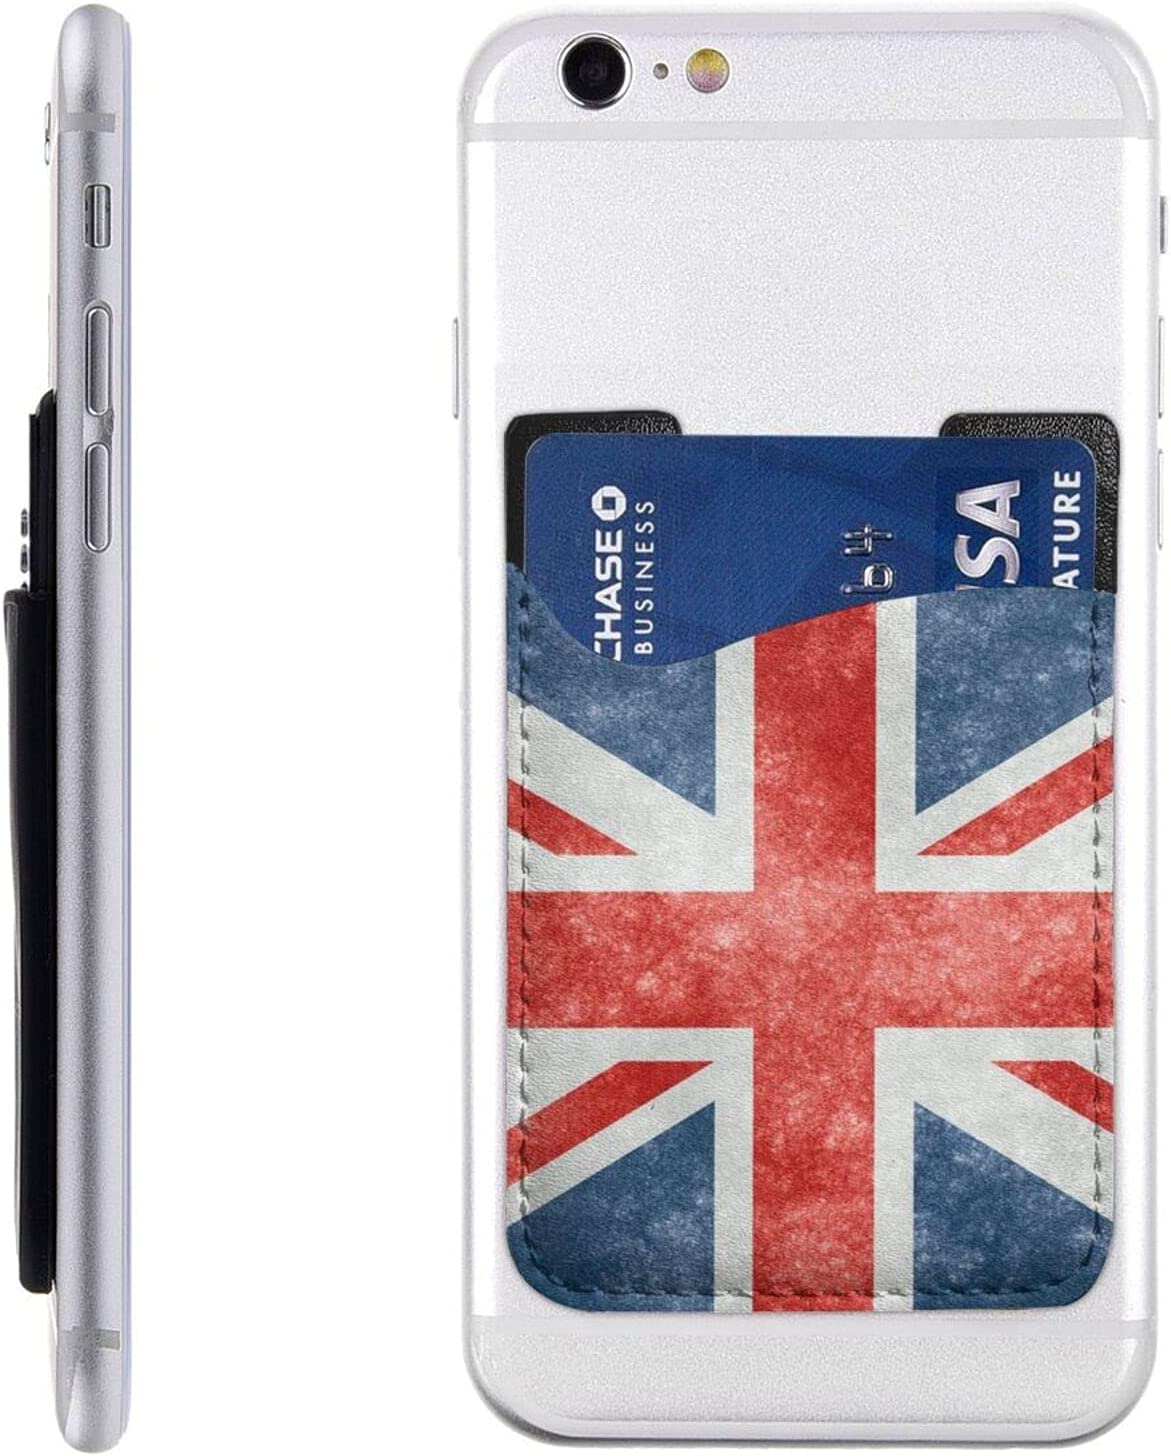 The Union Flag Pattern Phone New Shipping Free Shipping Card Free shipping anywhere in the nation Car Cell Stick Holder On